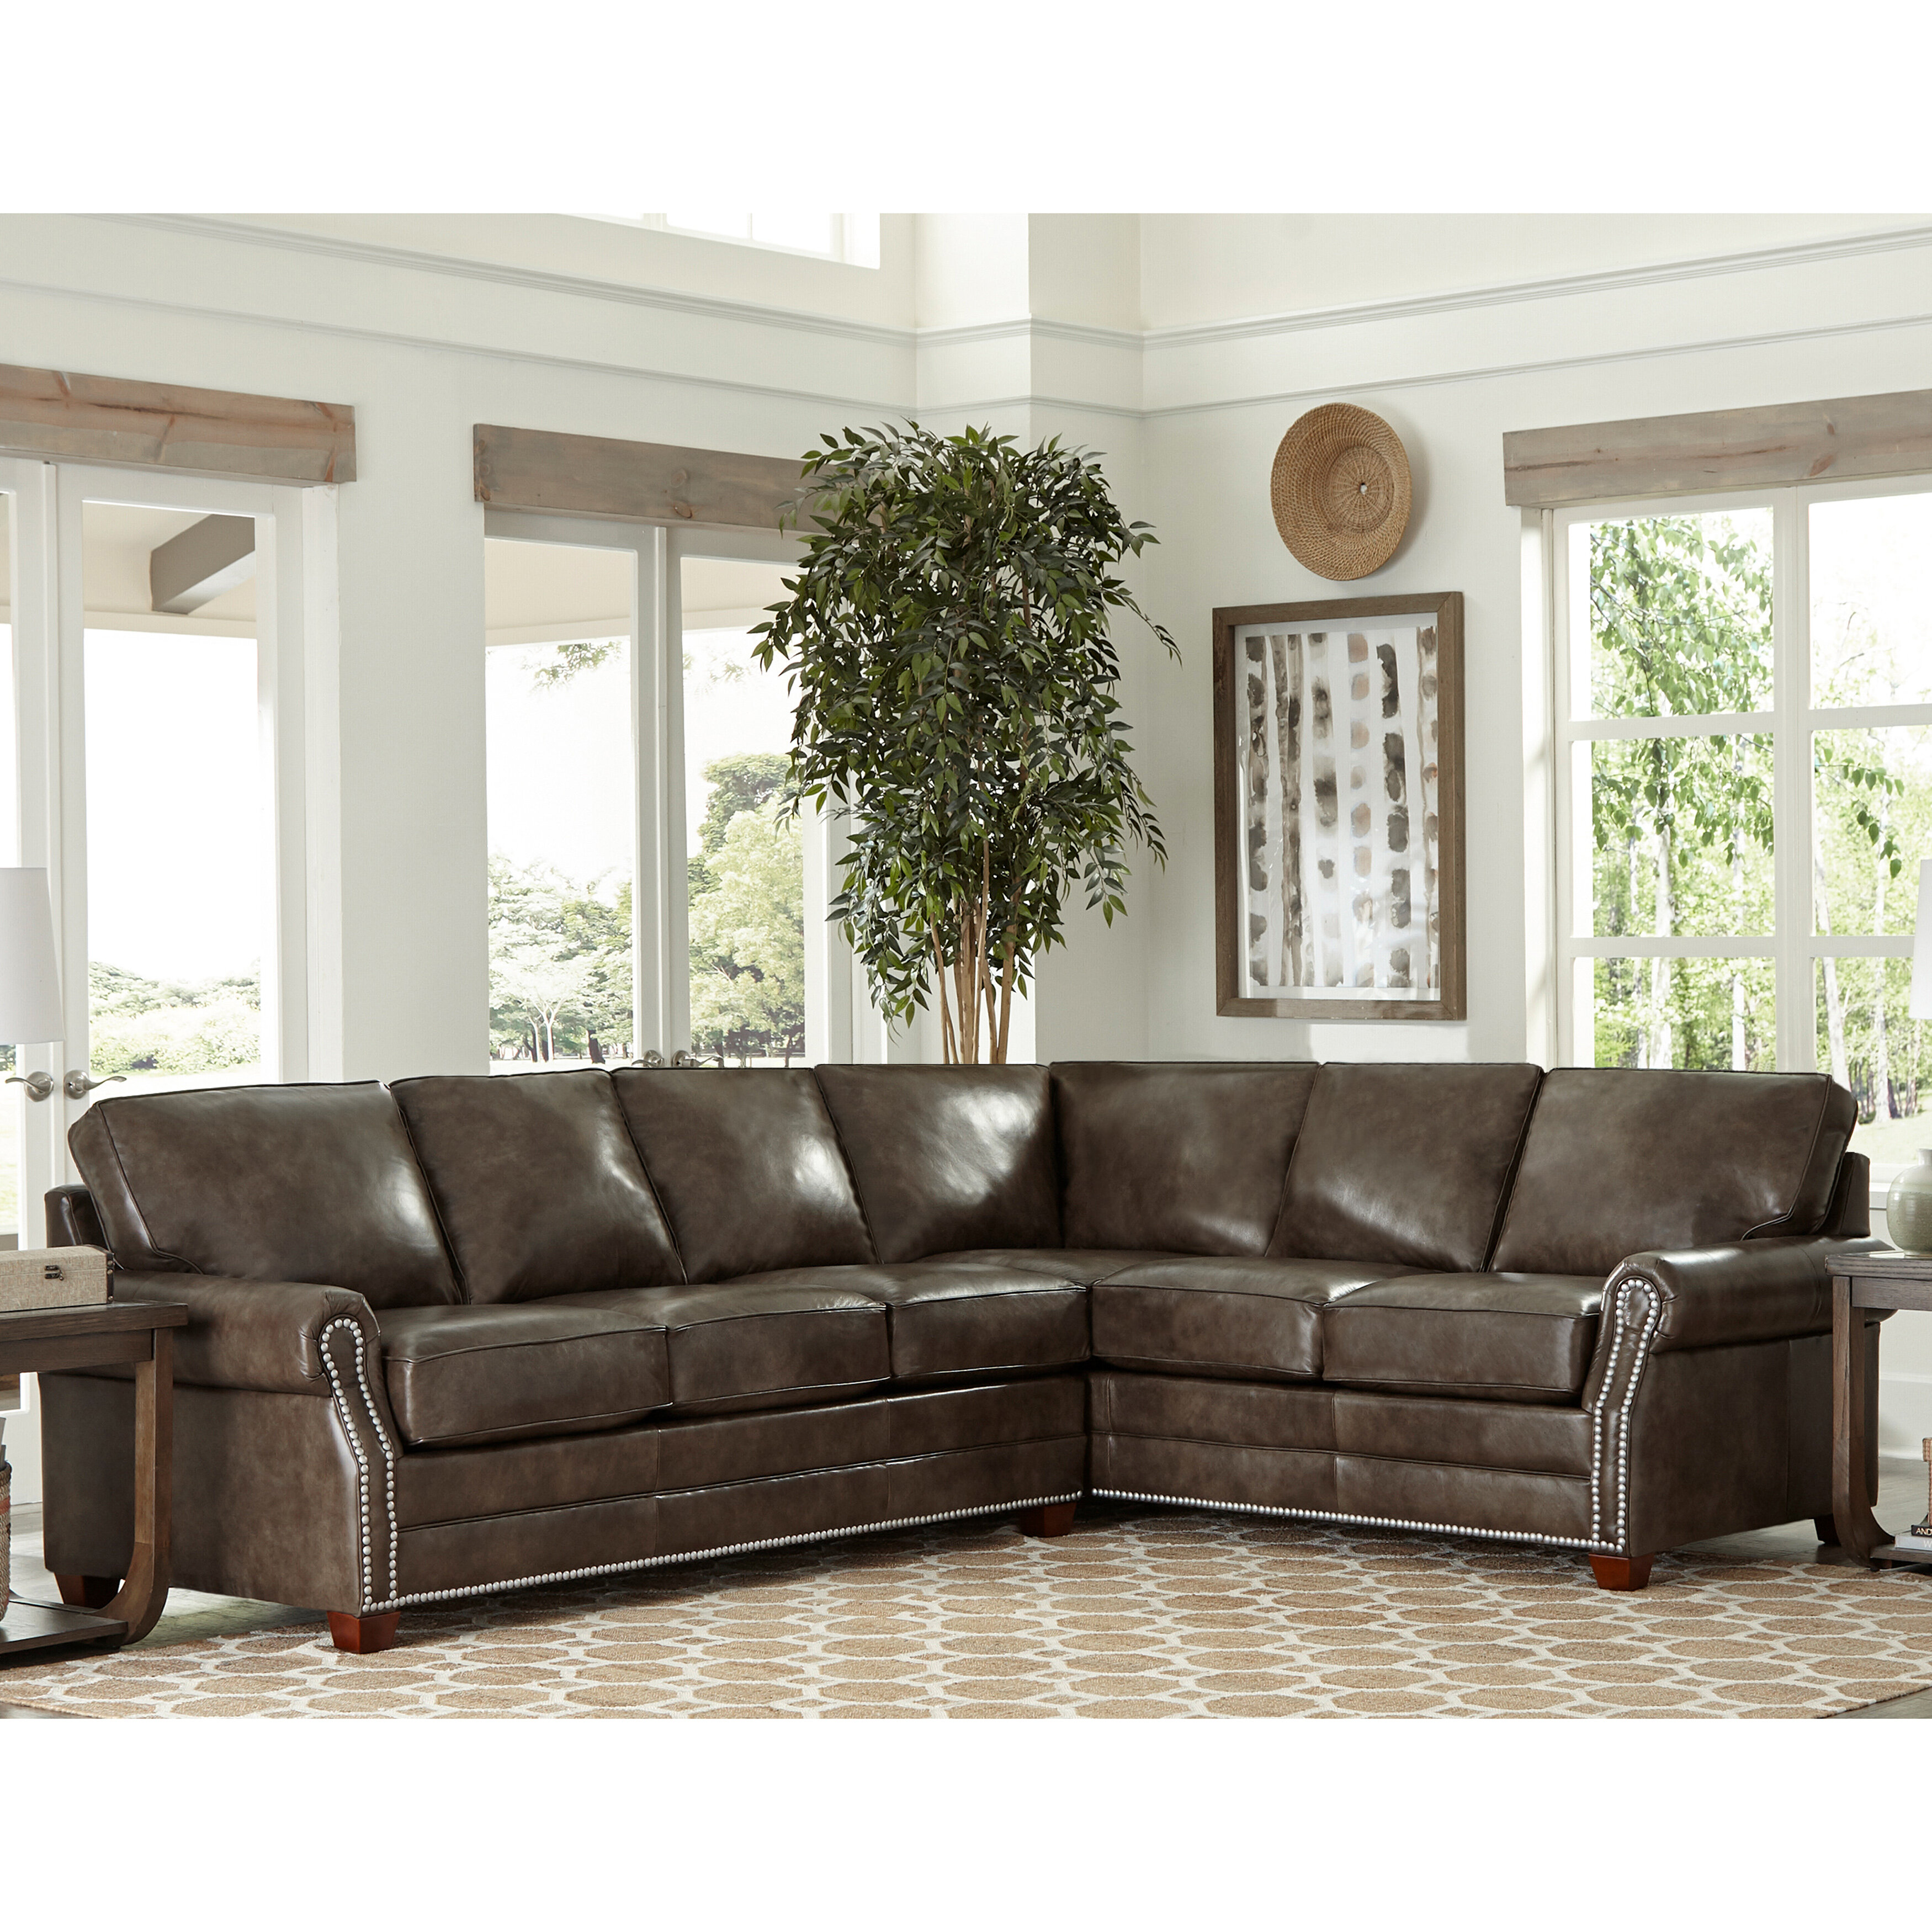 Wondrous Susana Right Hand Facing Leather Sectional Ibusinesslaw Wood Chair Design Ideas Ibusinesslaworg